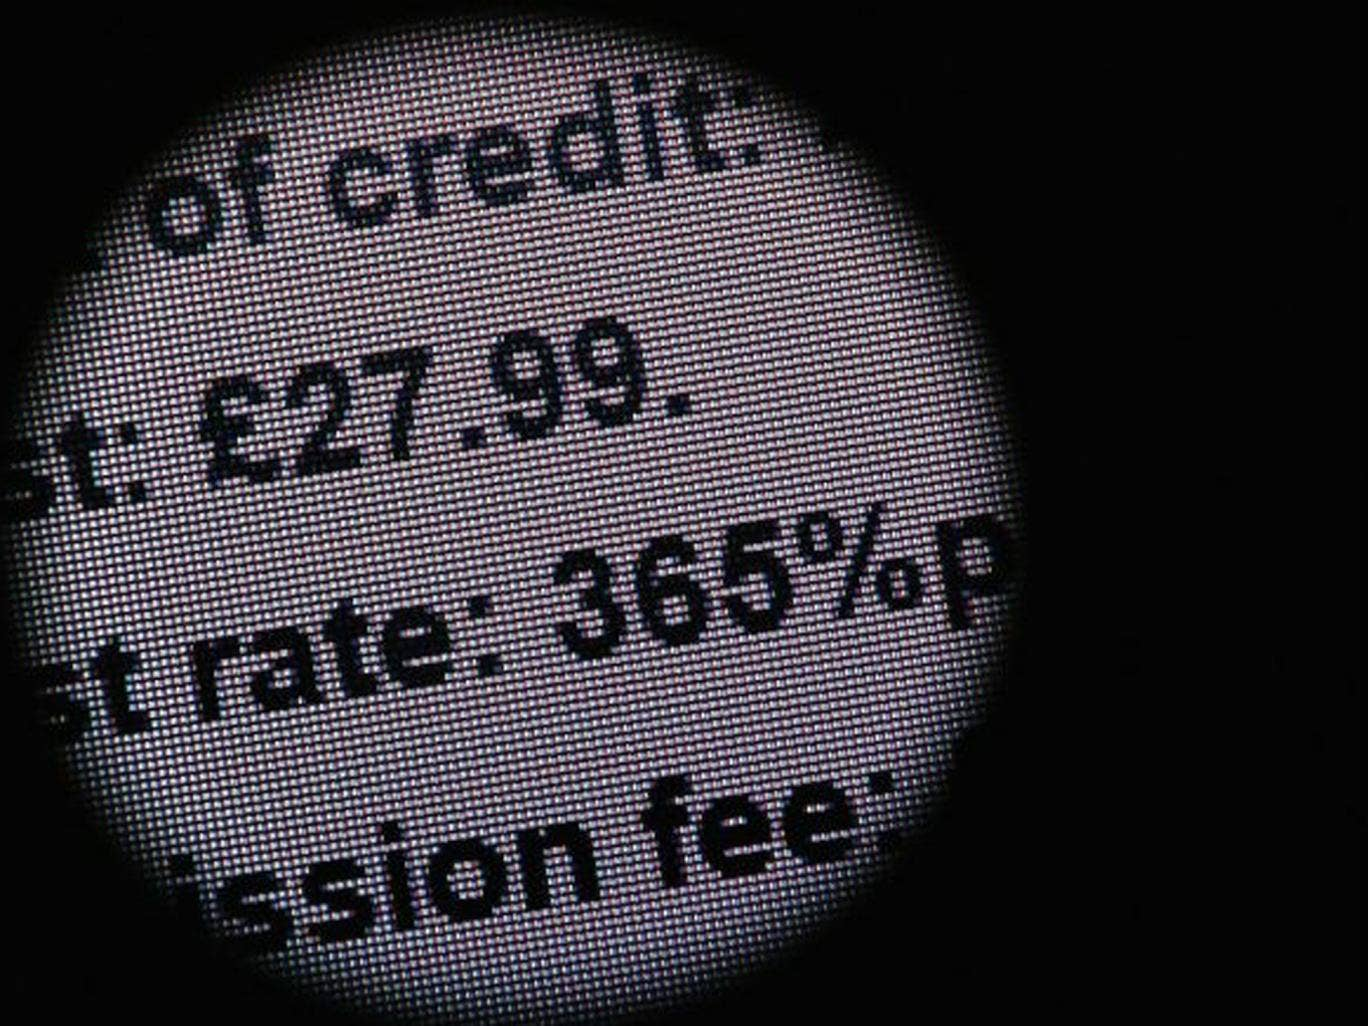 Savage circle: For all the talk of economic recovery, household debt is still on the rise and it will take years for some borrowers to get out of the red. Against this backdrop, the payday lender Wonga announced a massive rise in profits